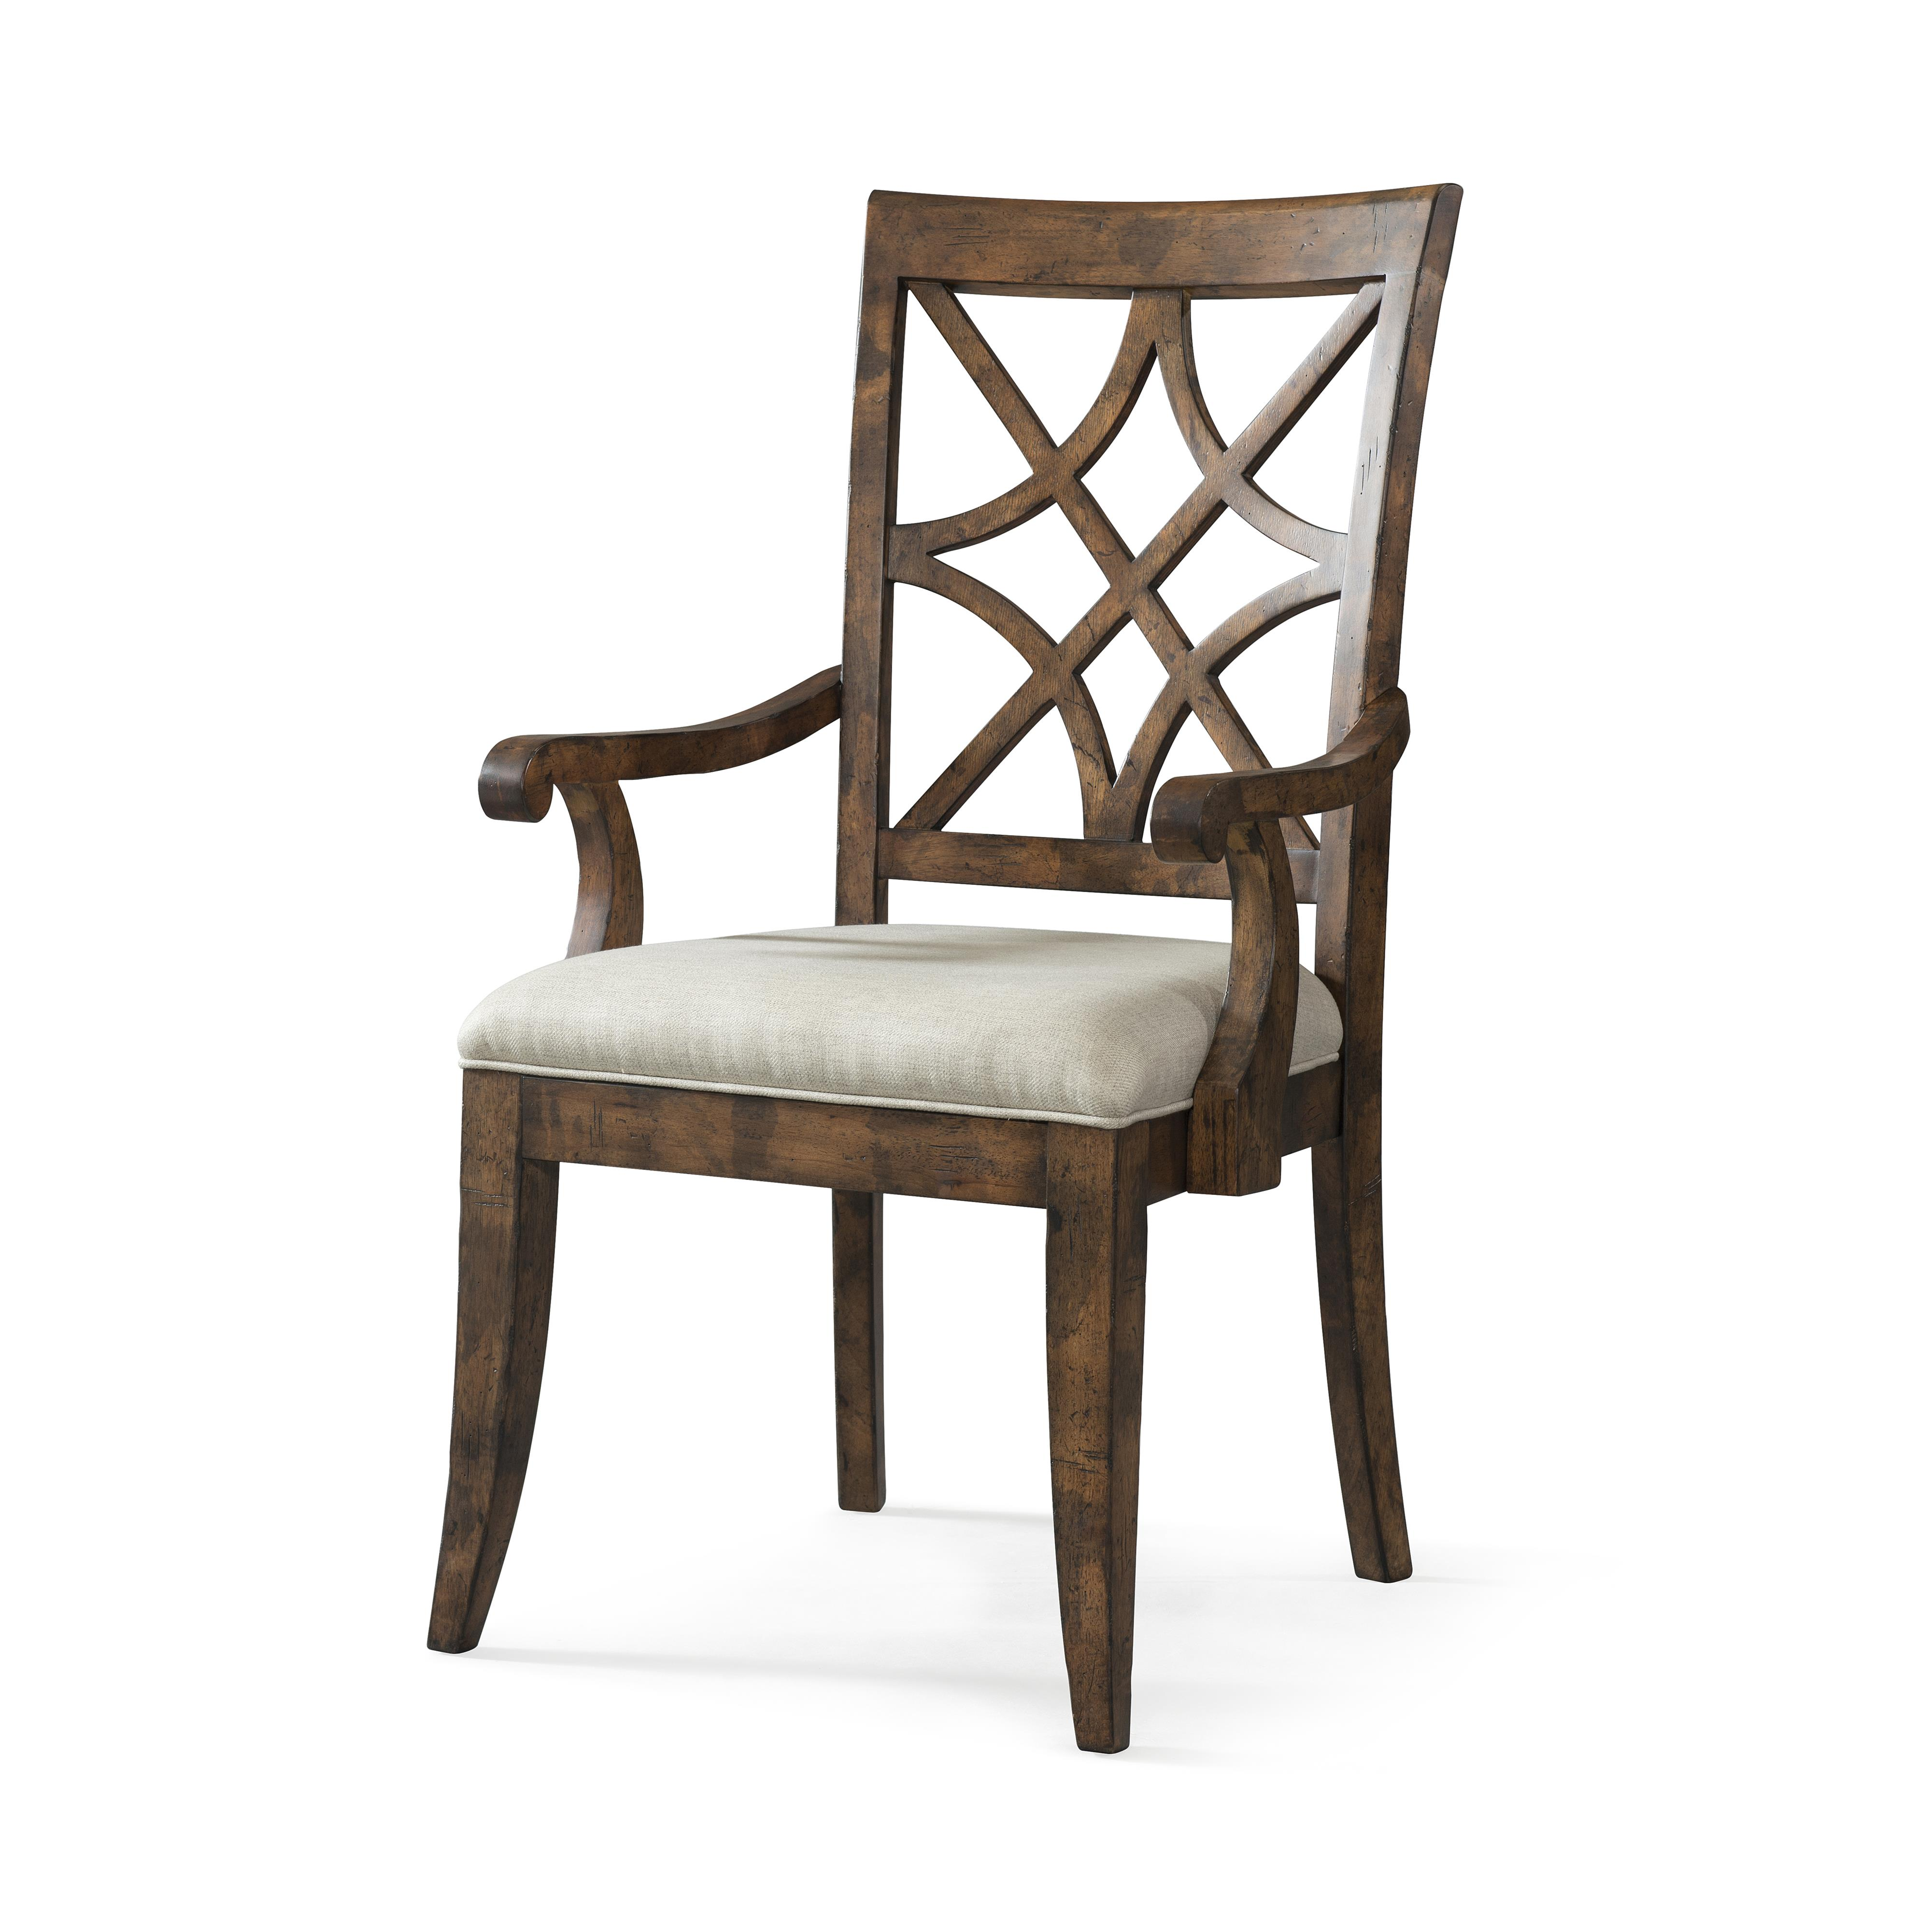 Trisha Yearwood Home Nashville Arm Chair by Trisha Yearwood Home Collection by Klaussner at Darvin Furniture